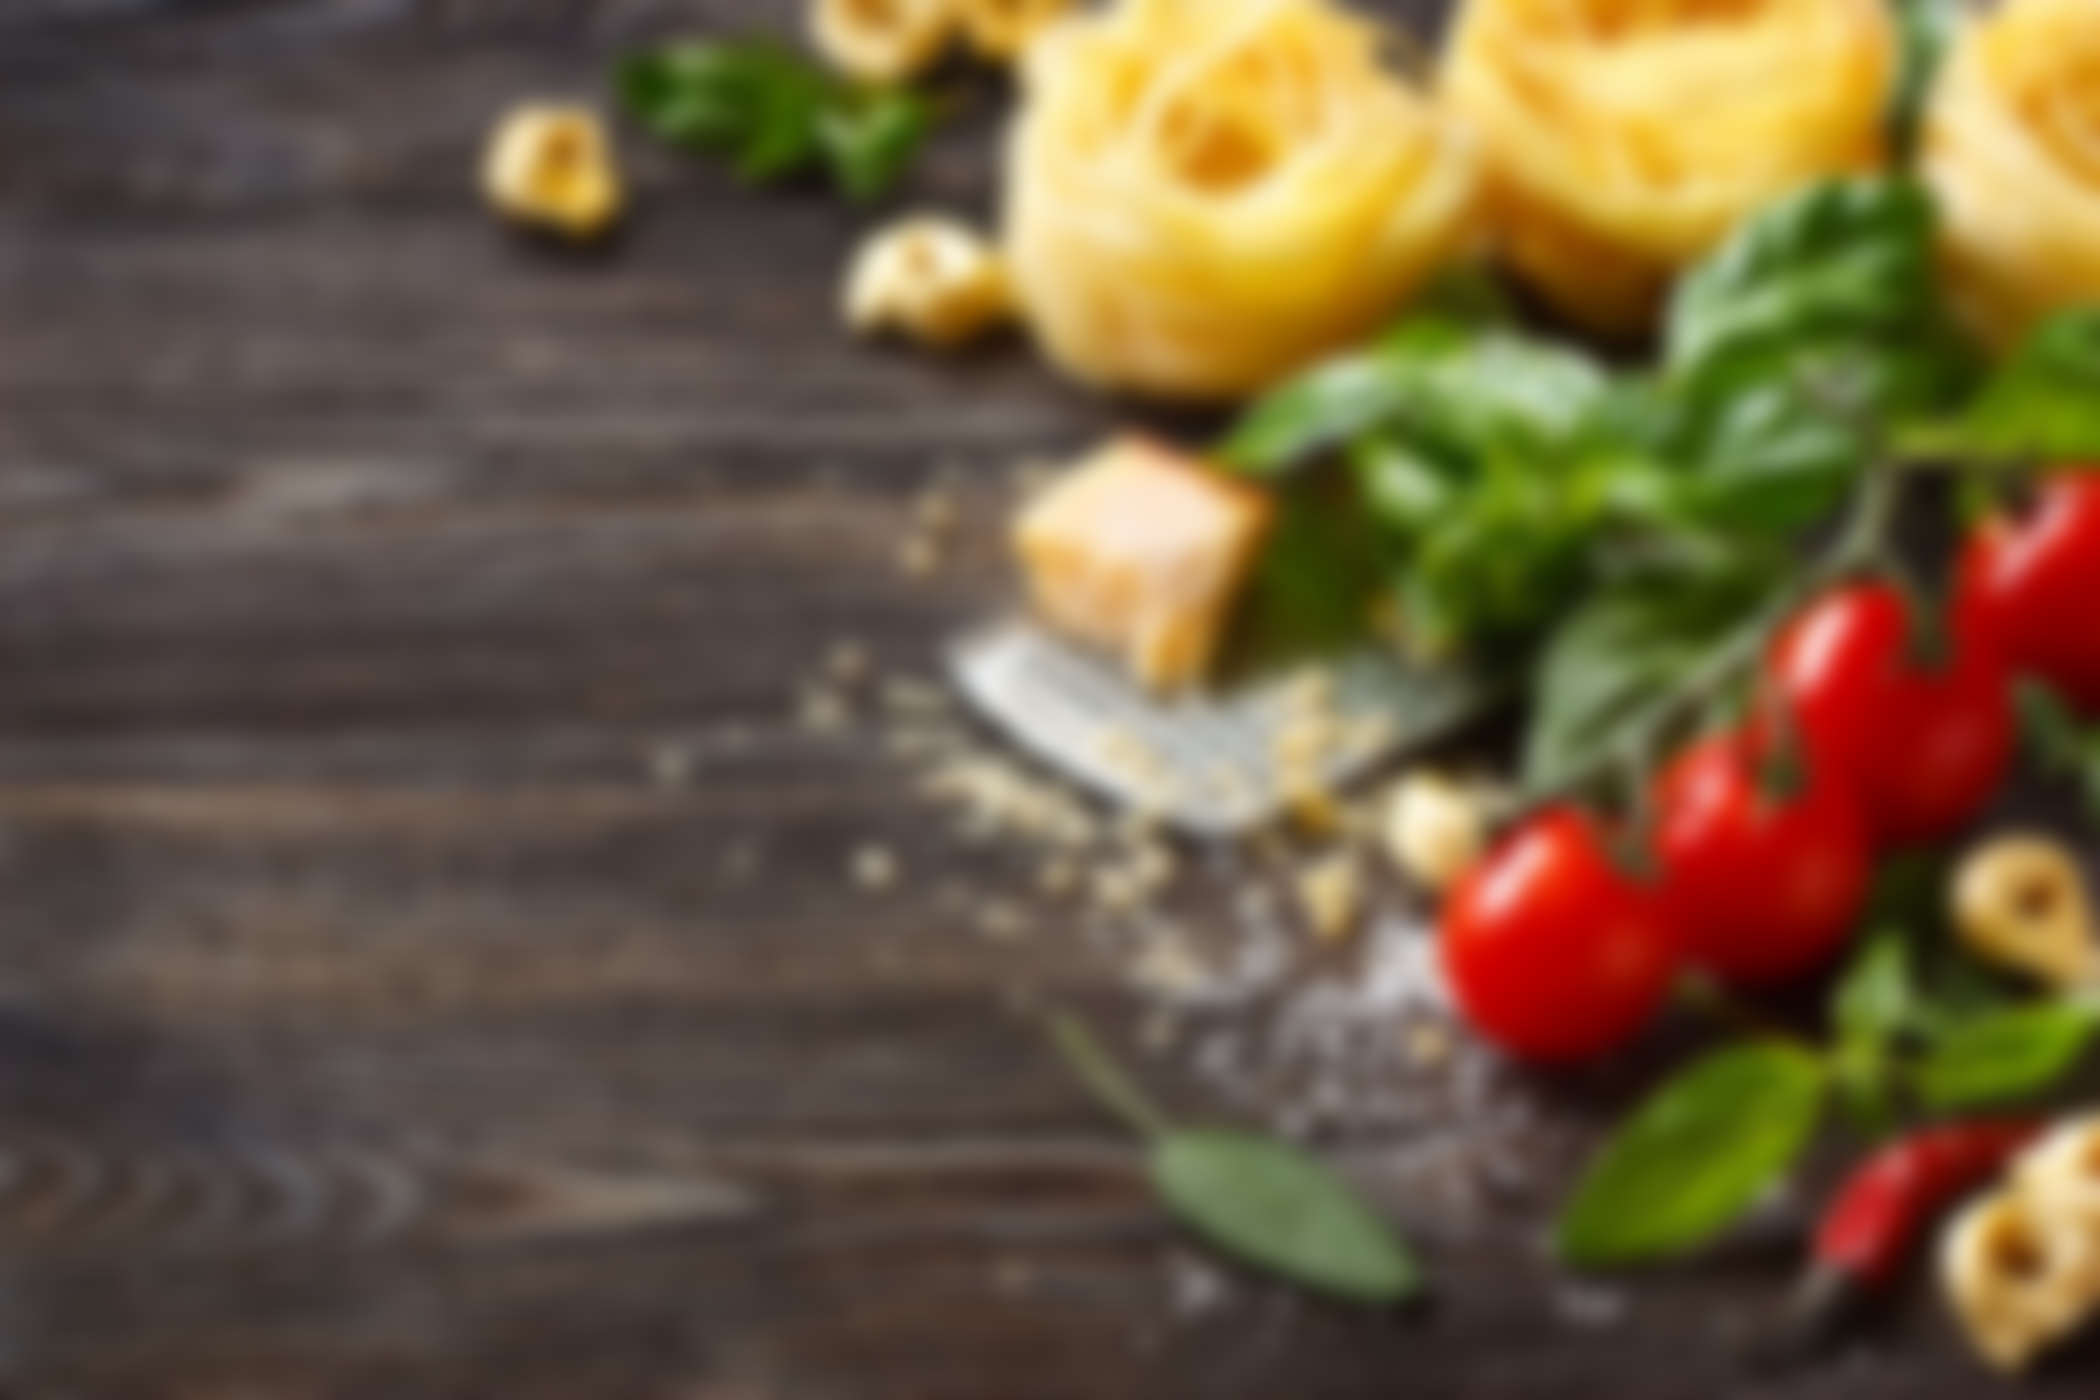 Italian food ingredients for cooking pasta on a wooden background with copy space.